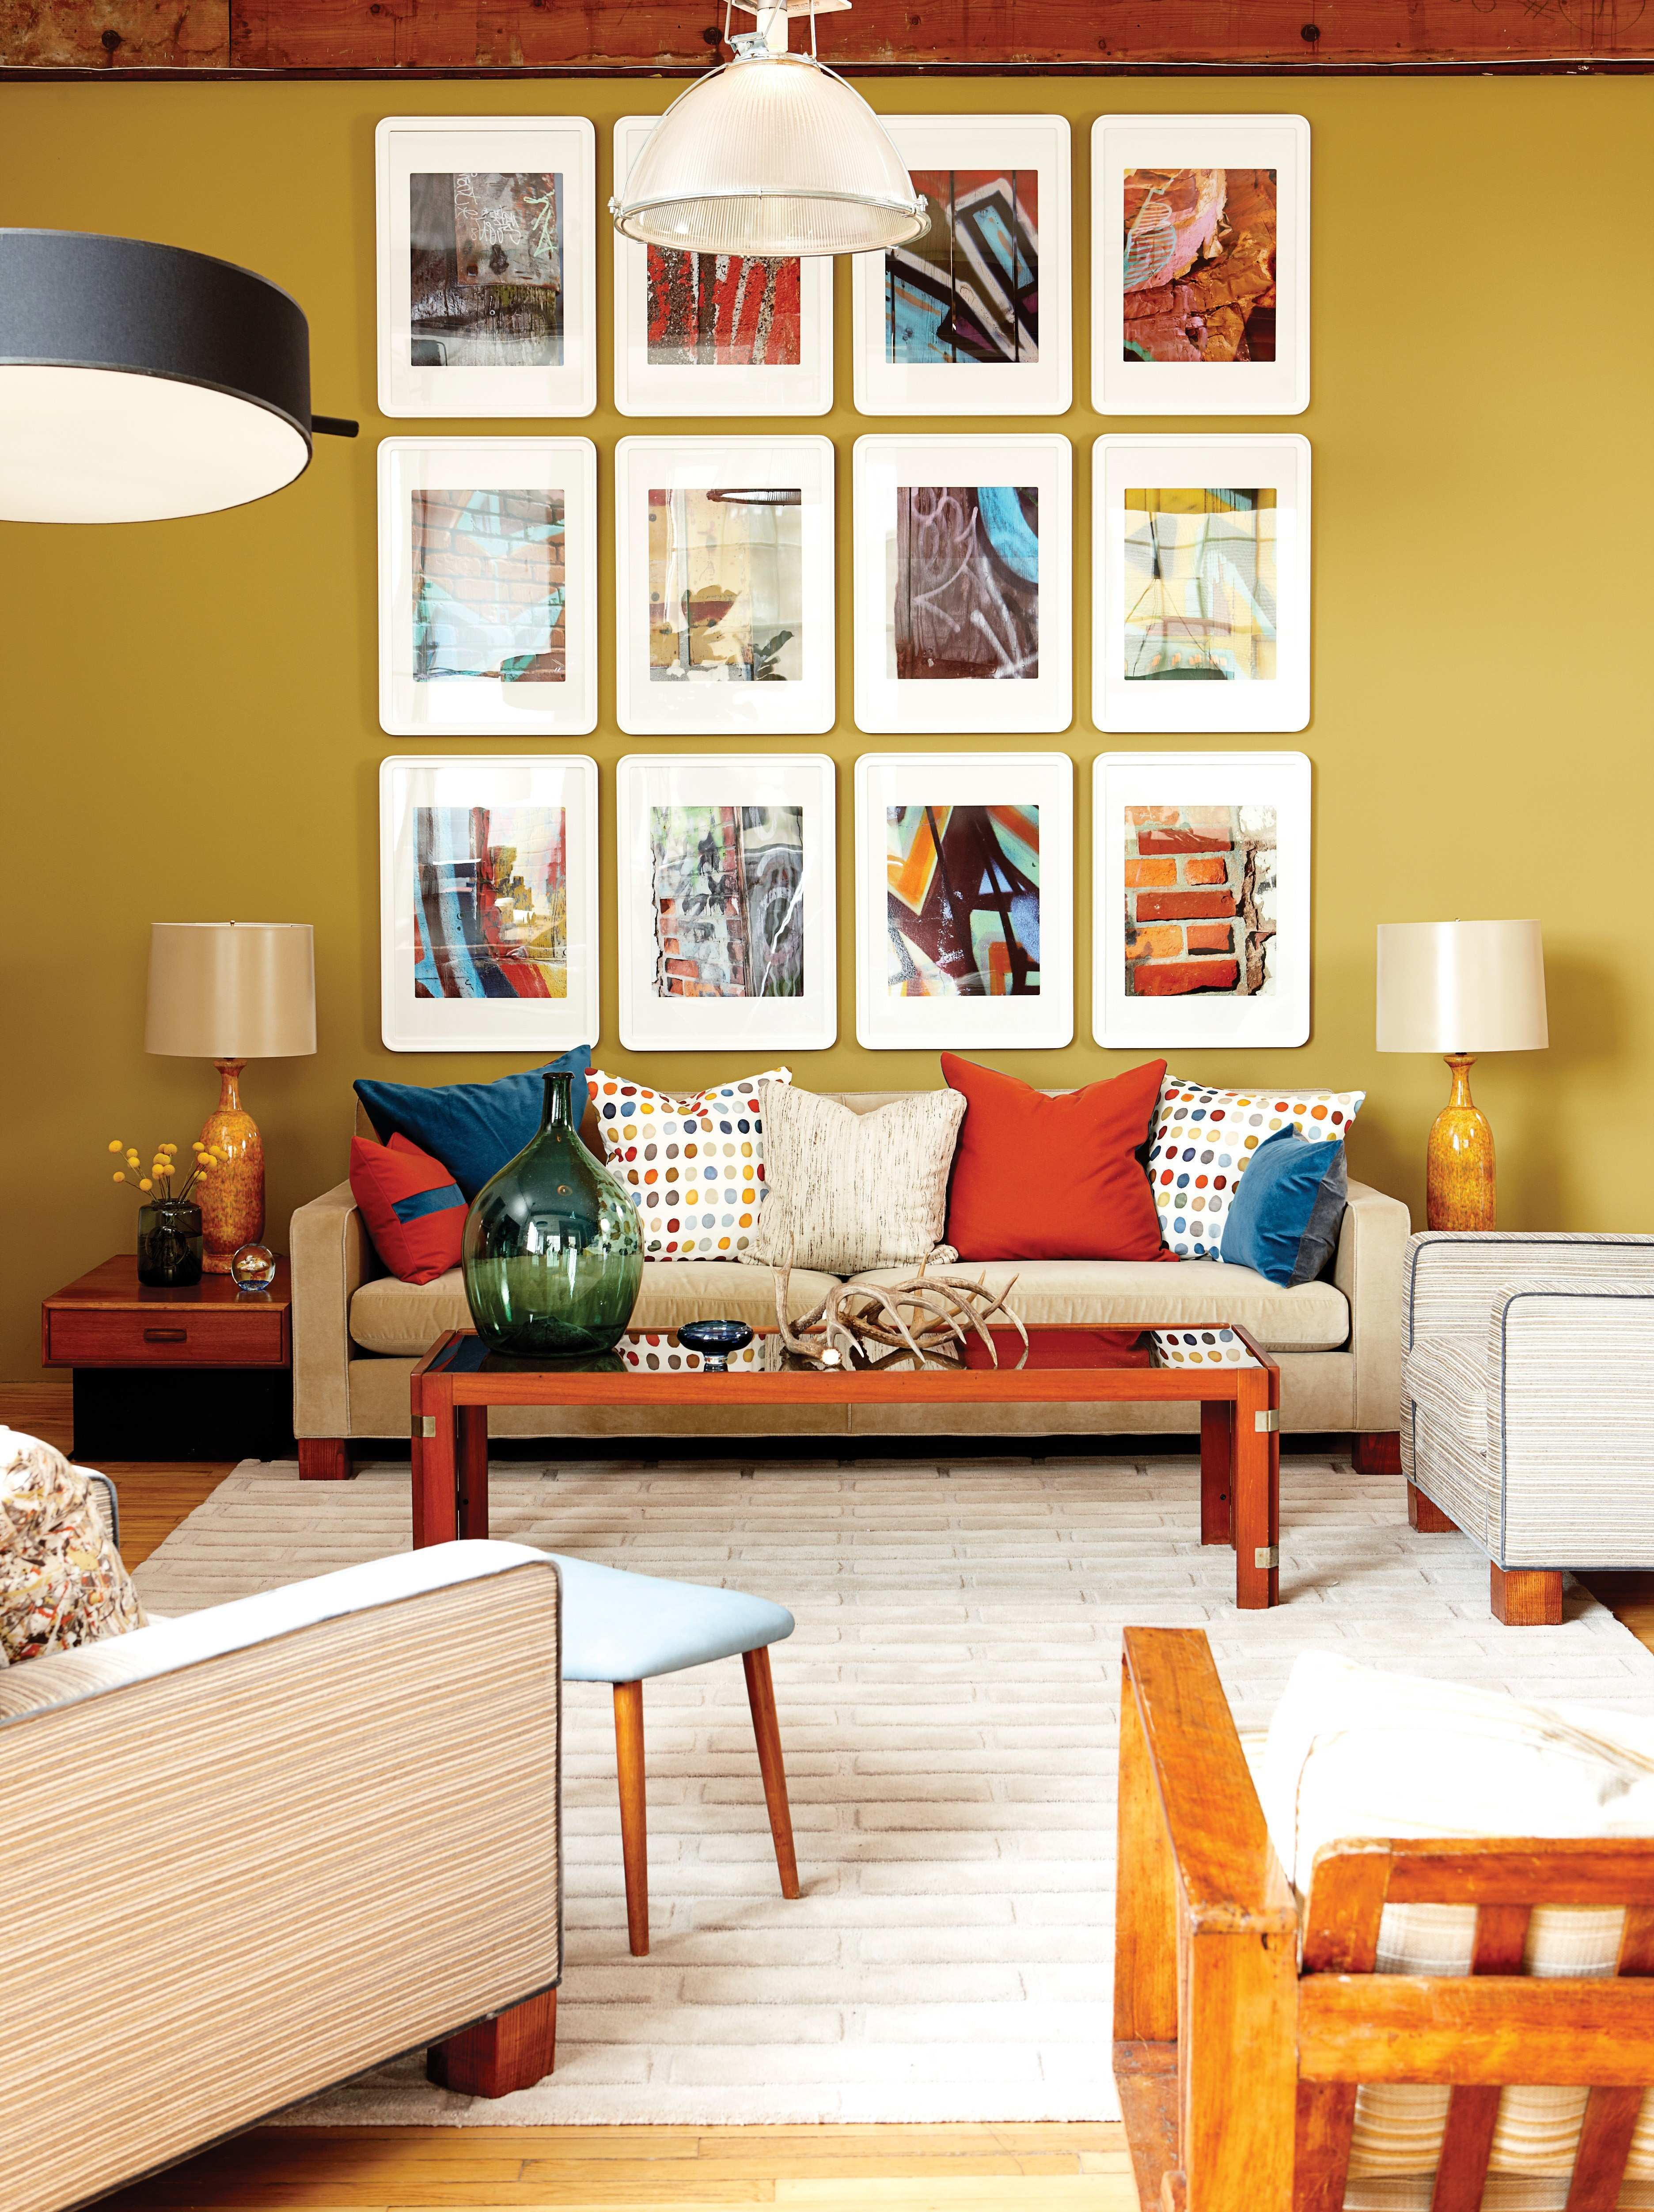 Bedroom Bedroom Wall Decorating Ideas Inspirational Ideas For